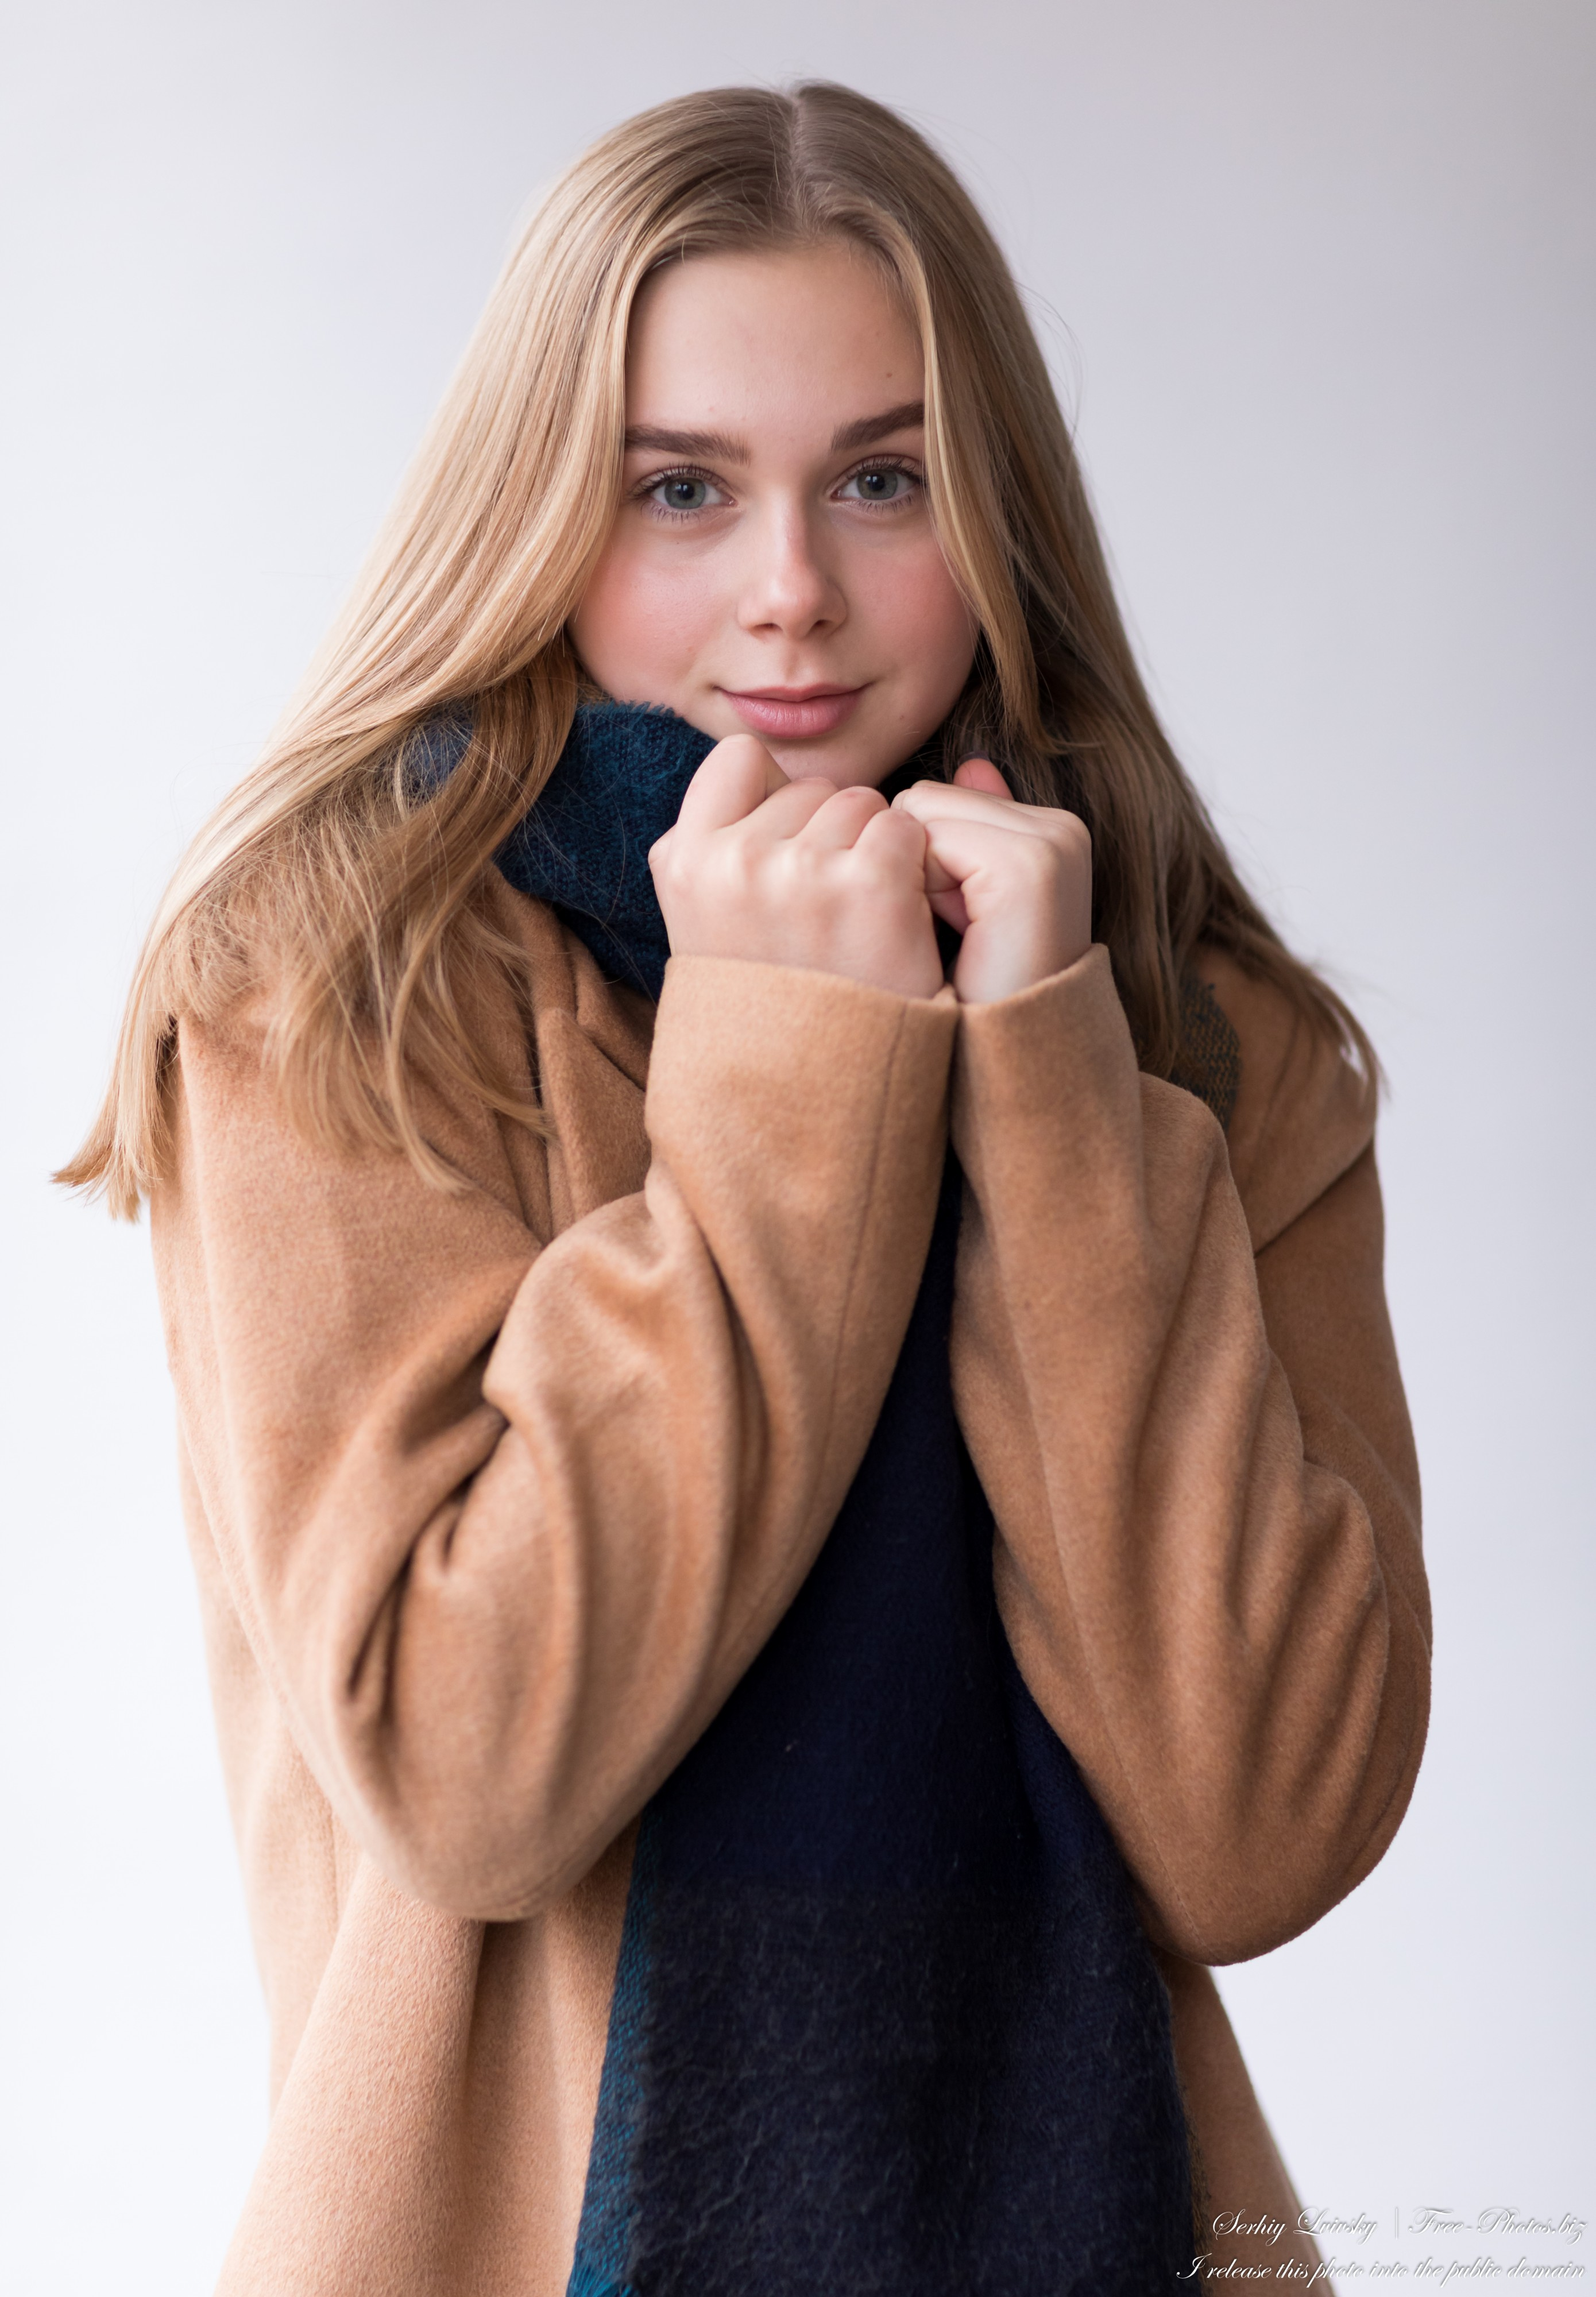 Emilia - a 15-year-old natural blonde Catholic girl photographed in November 2020 by Serhiy Lvivsky, picture 9